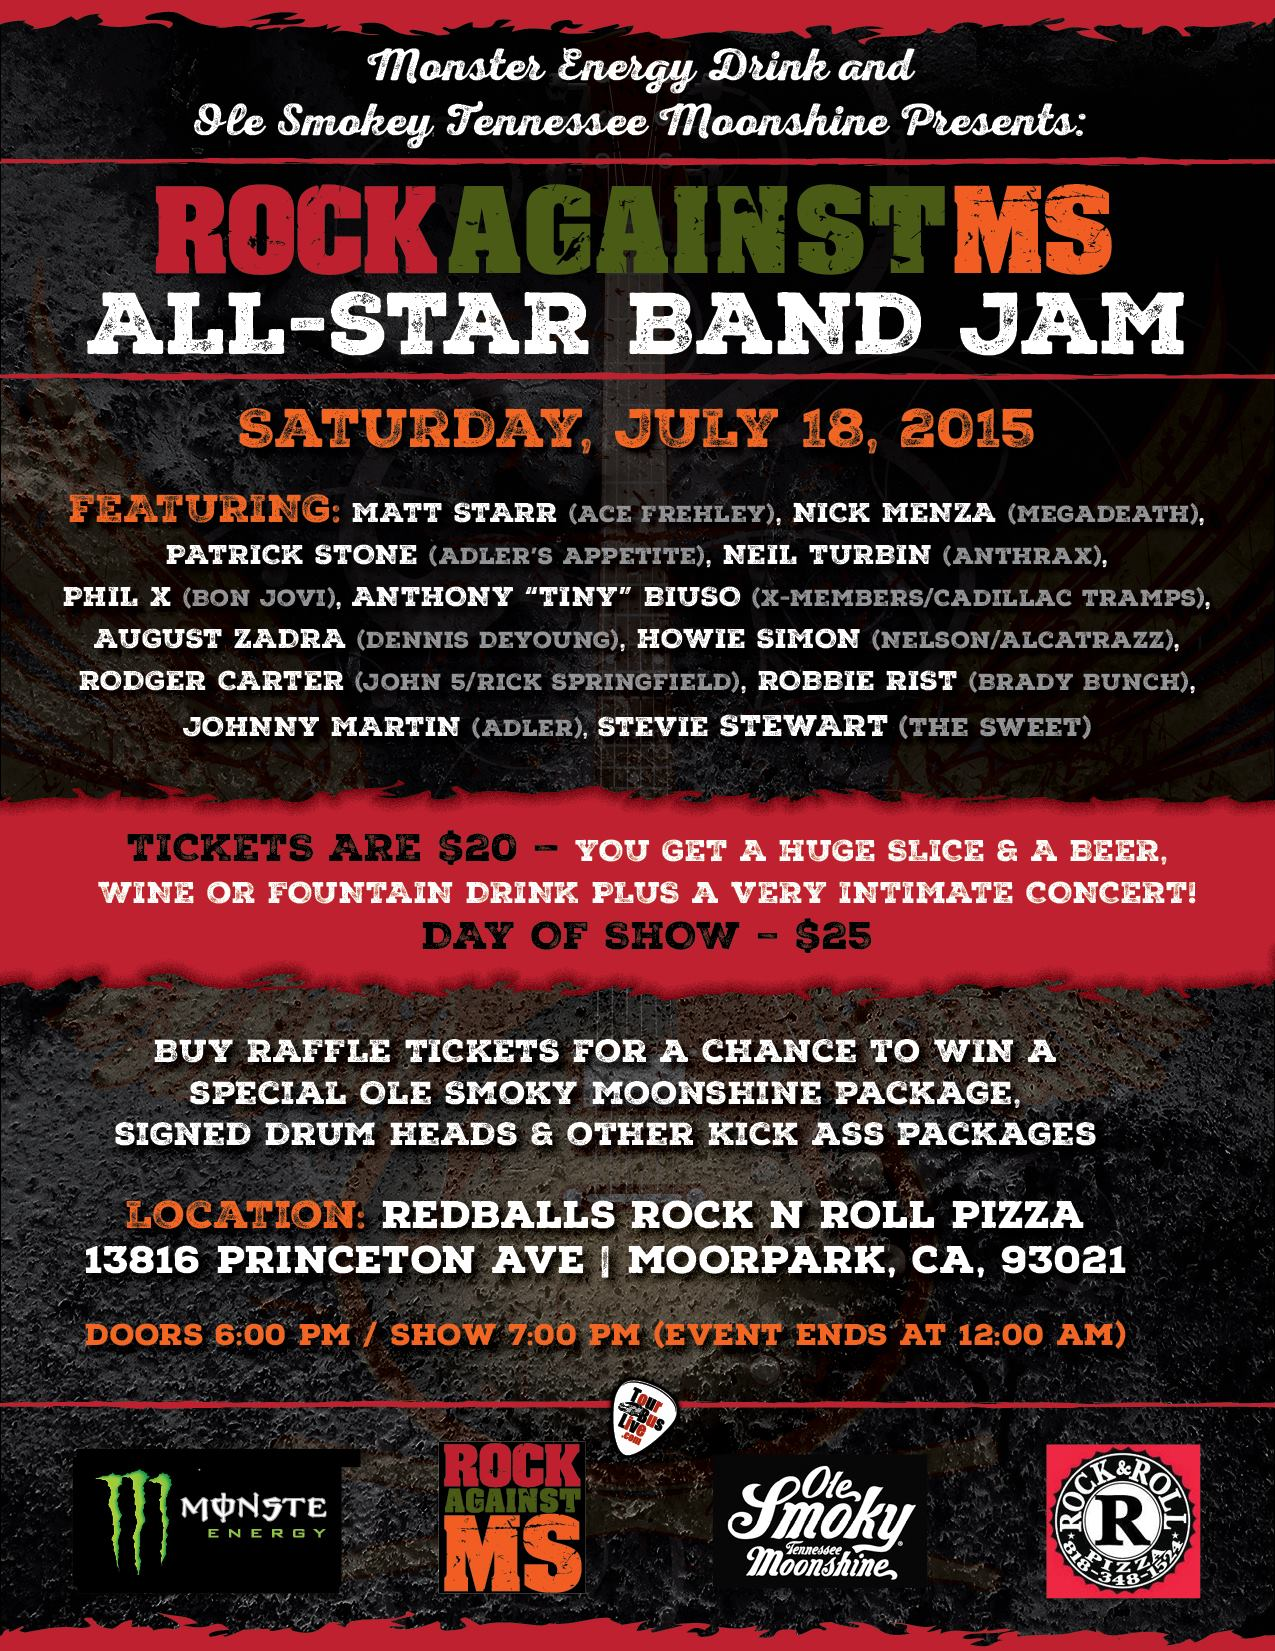 Rock Against MS Benefit All Star Band Jam